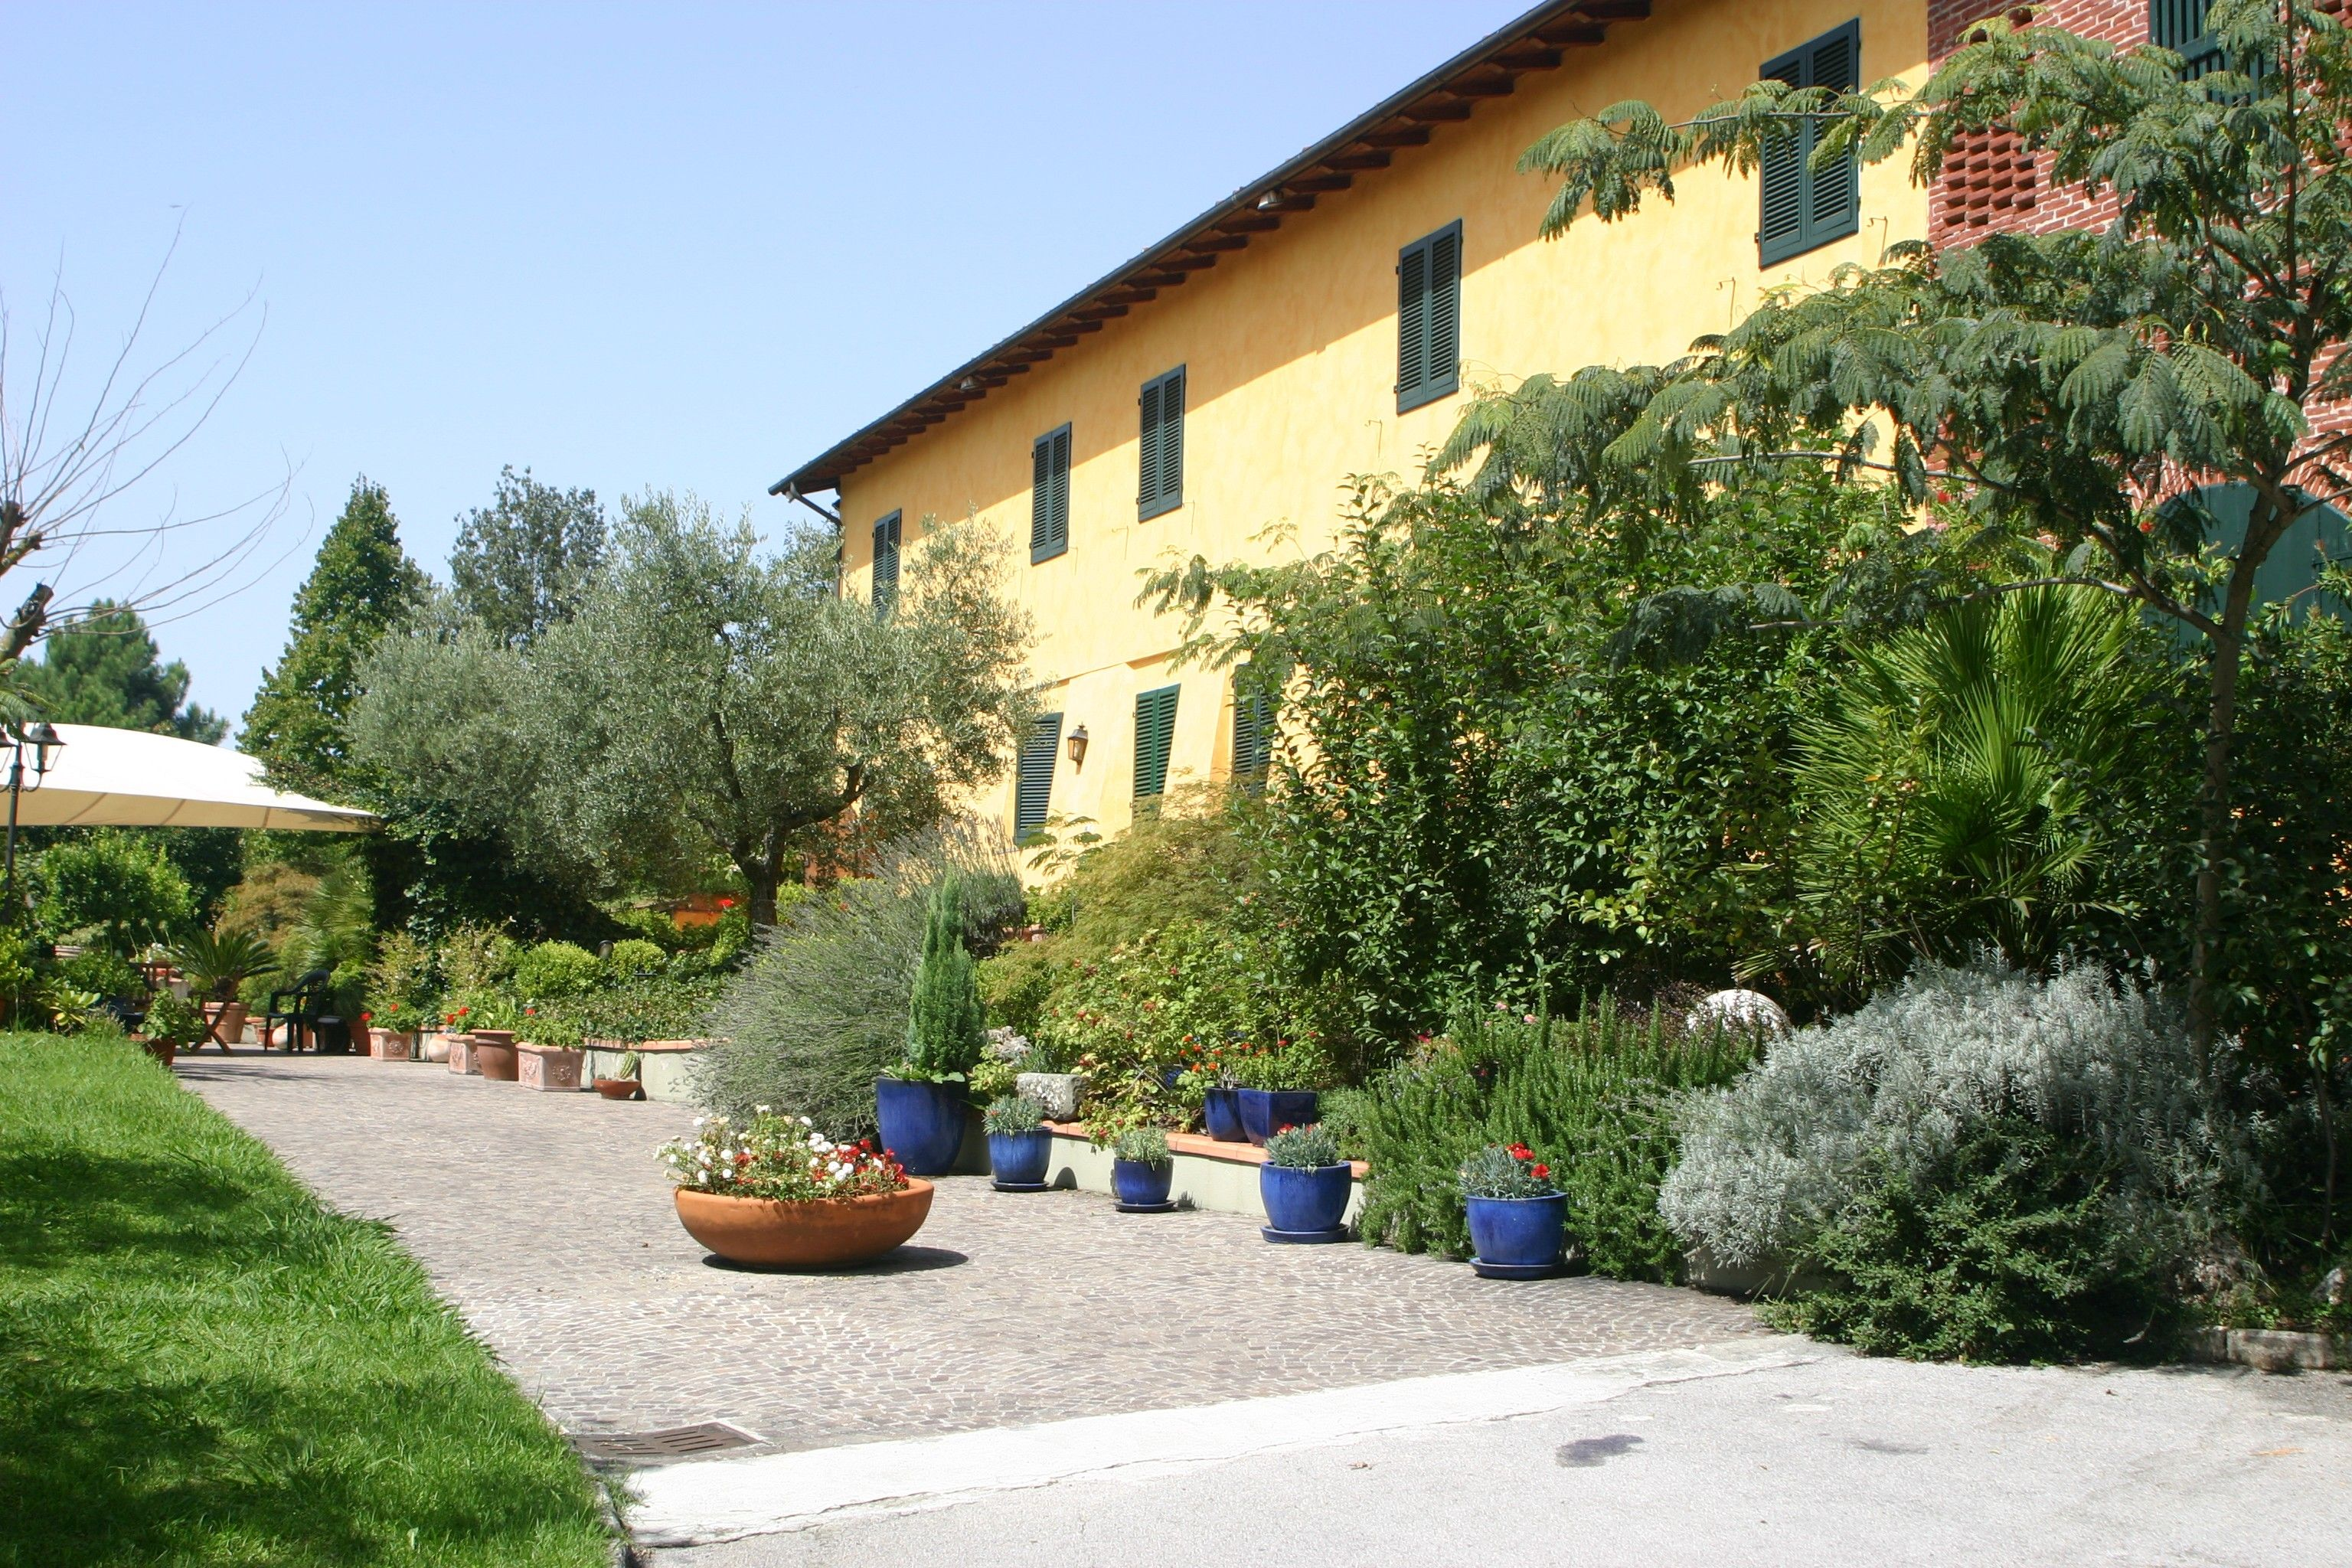 Pin by salogi tuscany villas on tuscany lucca area - Hotels in lucca italy with swimming pool ...